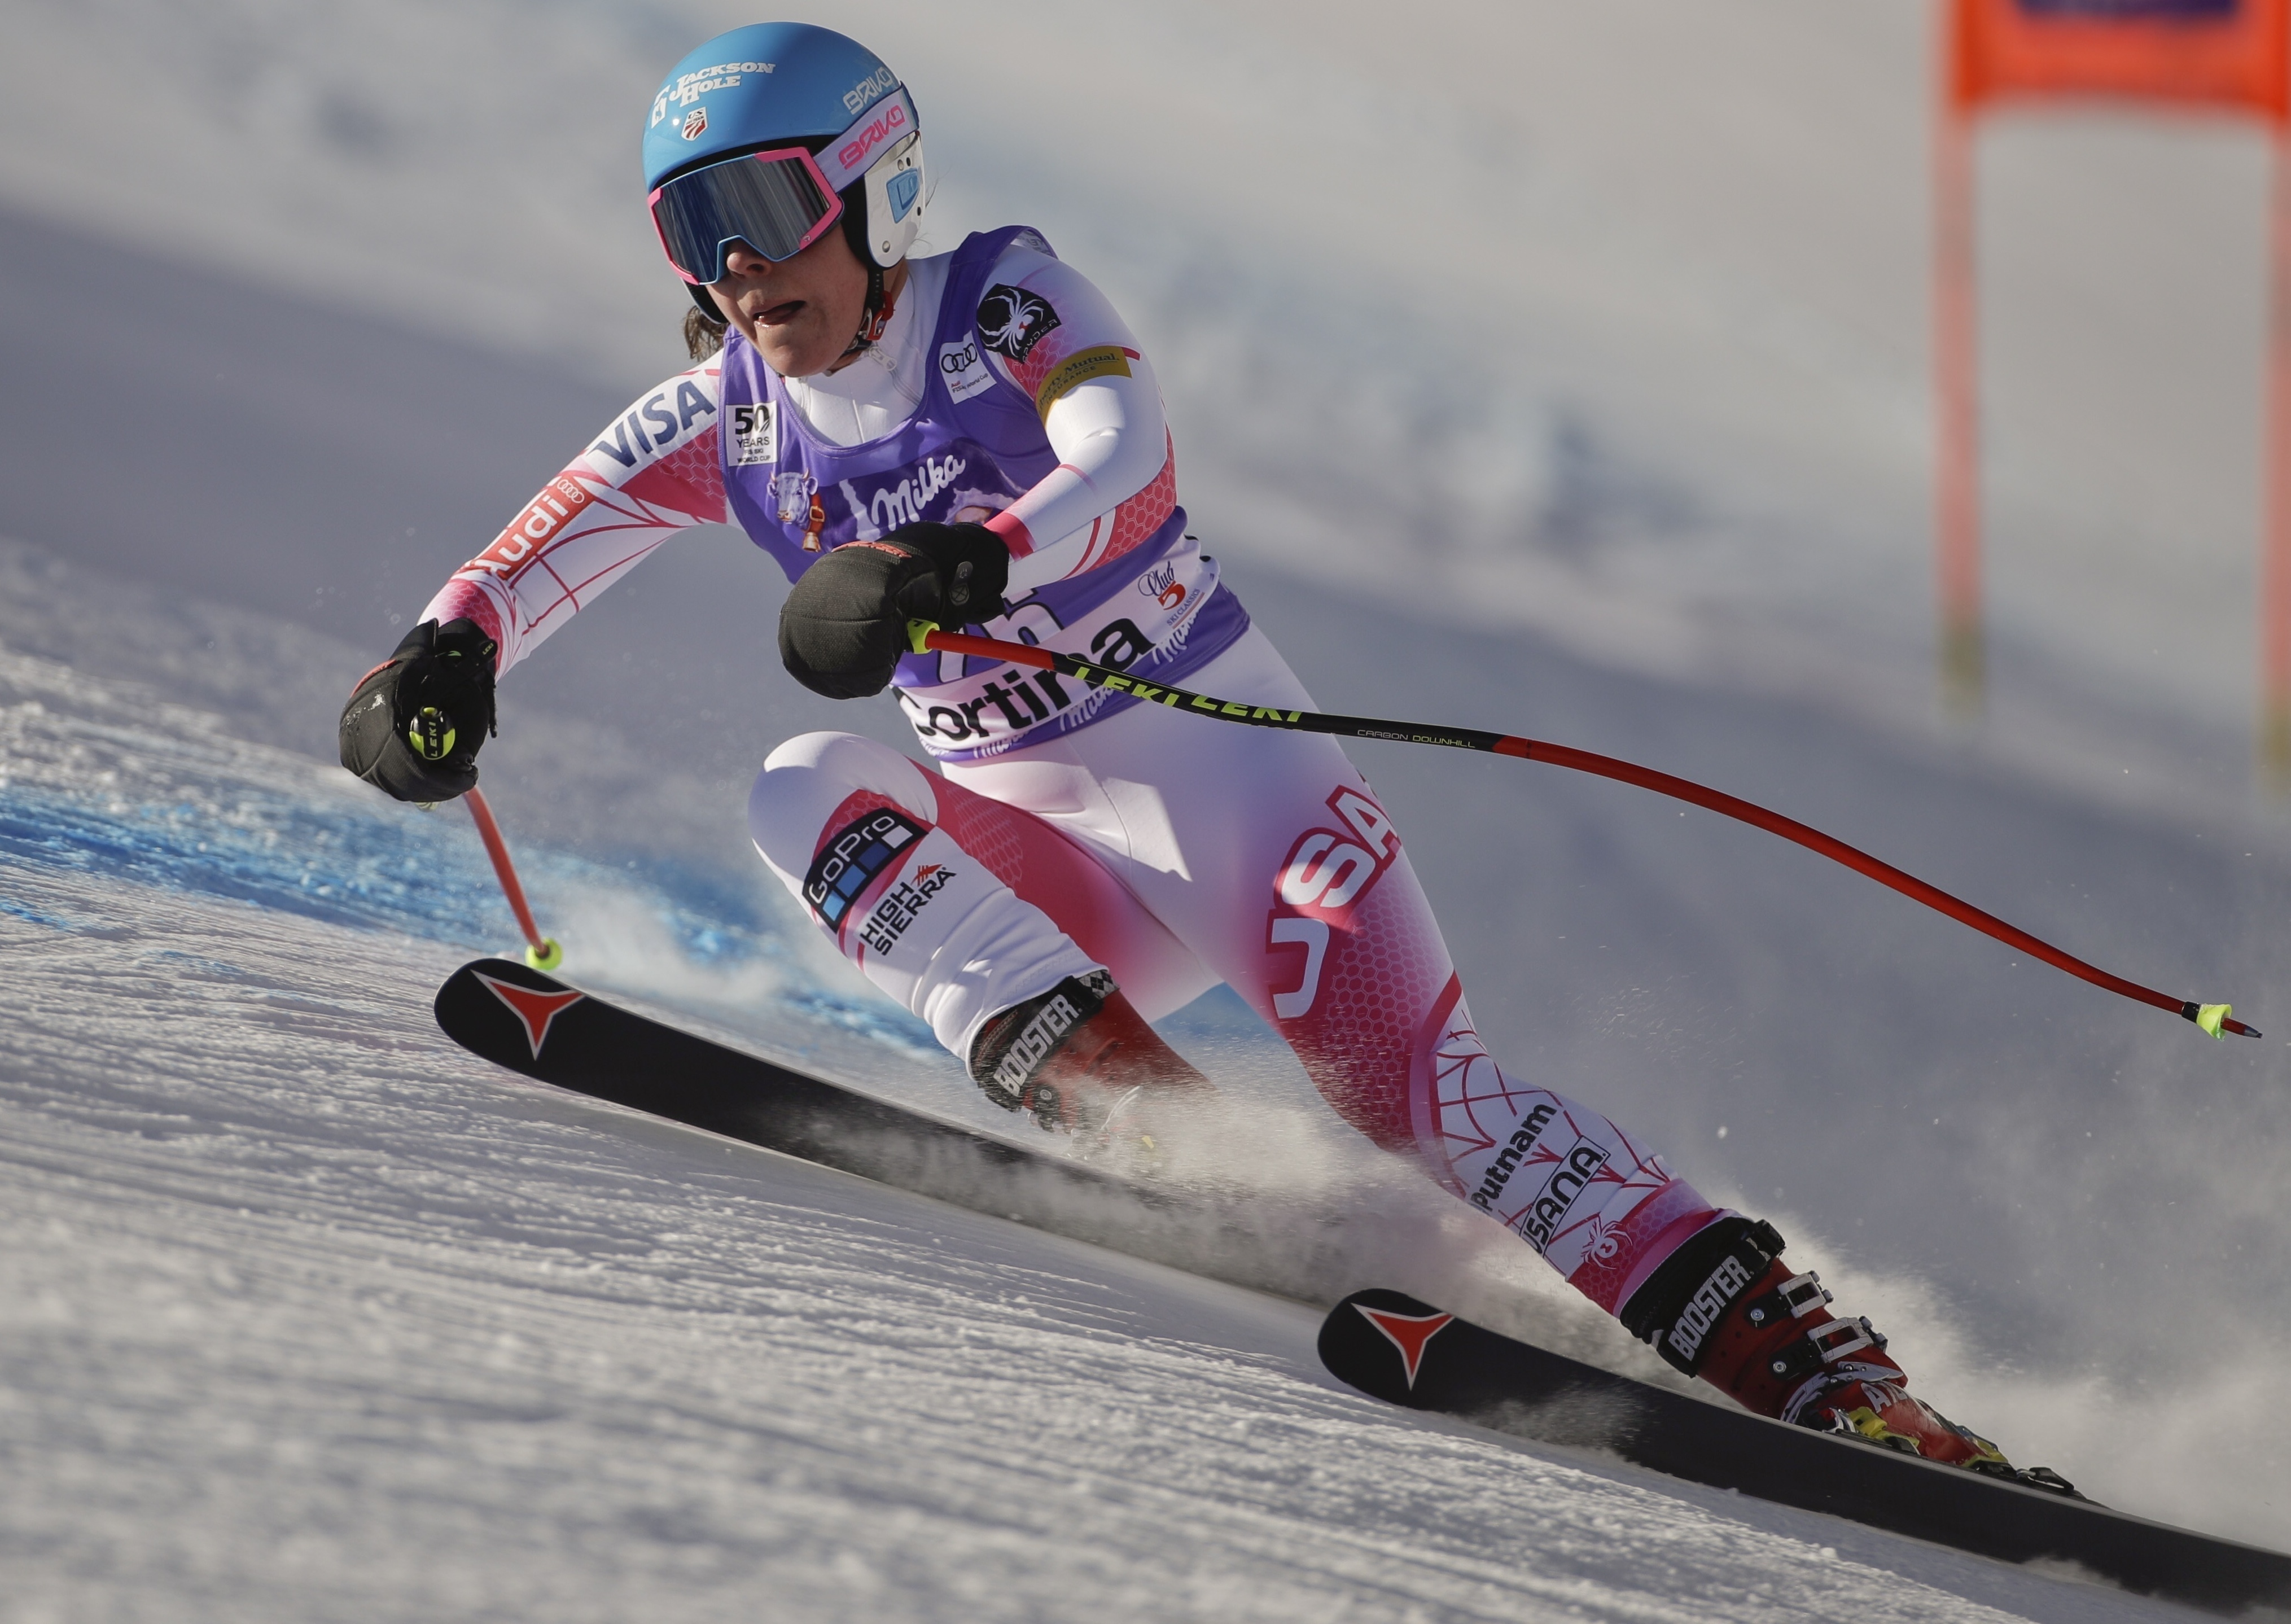 United States' Breezy Johnson competes during an alpine ski, women's World Cup downhill race, in Cortina d'Ampezzo, Italy, Saturday, Jan. 28, 2017. (AP Photo/Domenico Stinellis)